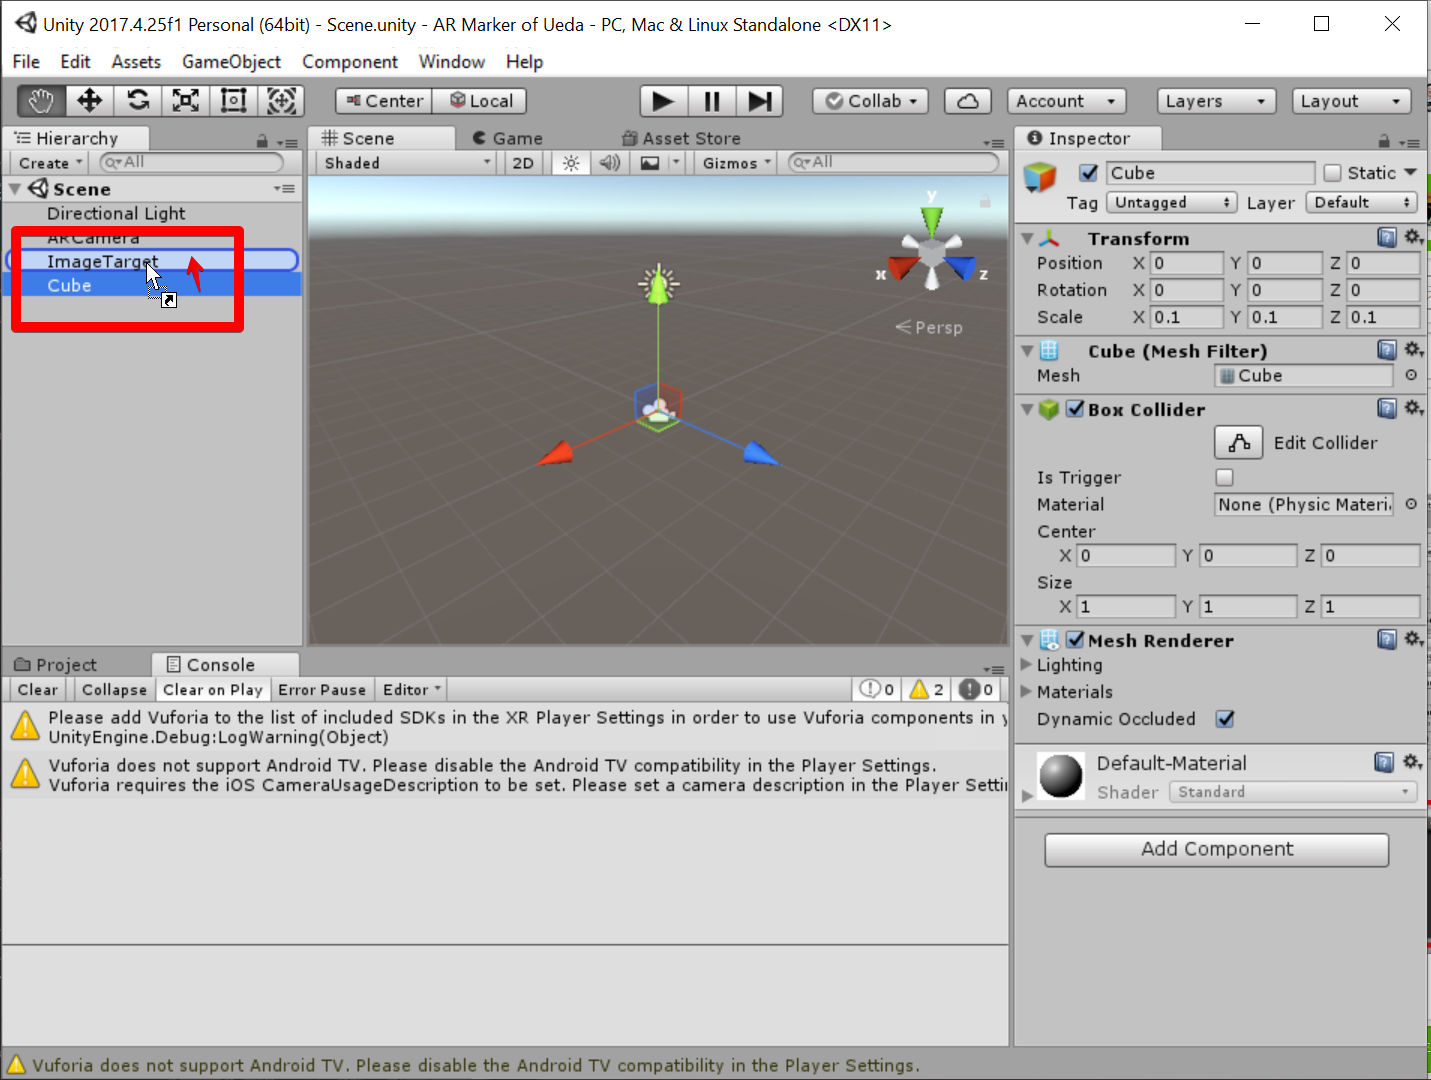 Unity 2017.4.25f1 Personal (64bit) - Scene.unity - AR Marker of Ueda - PC, Mac & Linux Standalone _DX11_ 2019-07-05 07.51.23.png